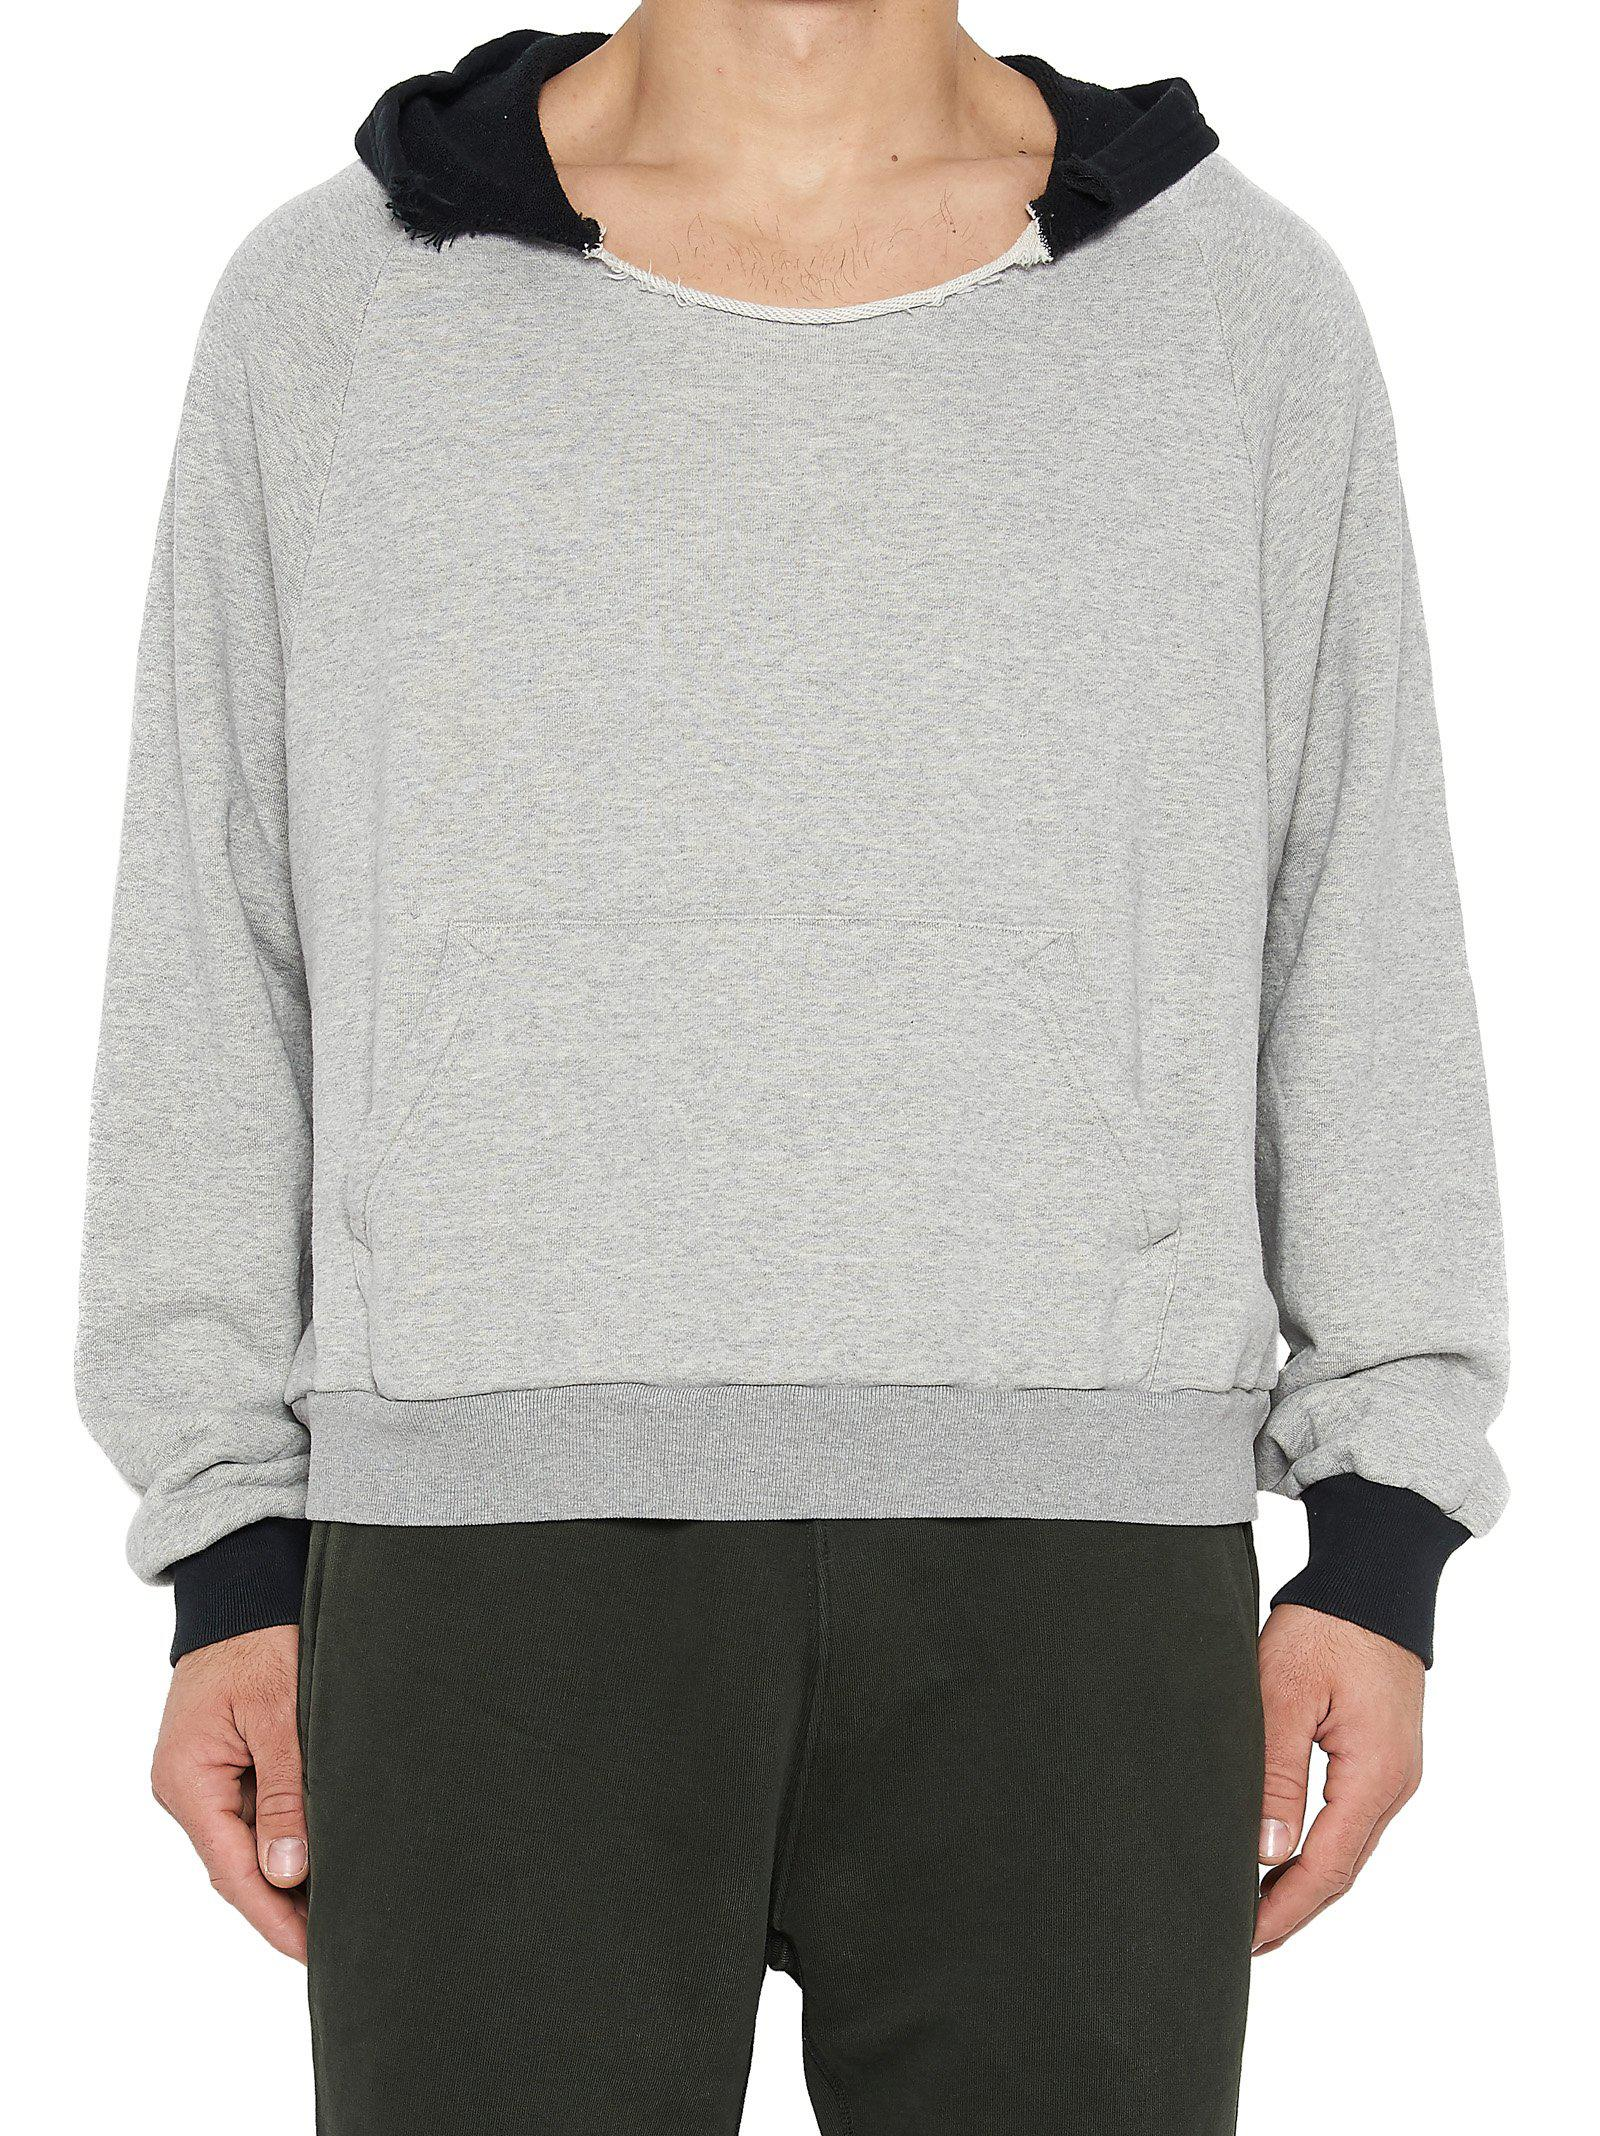 960336c9 Yeezy Ripped Hoodie in Gray for Men - Lyst